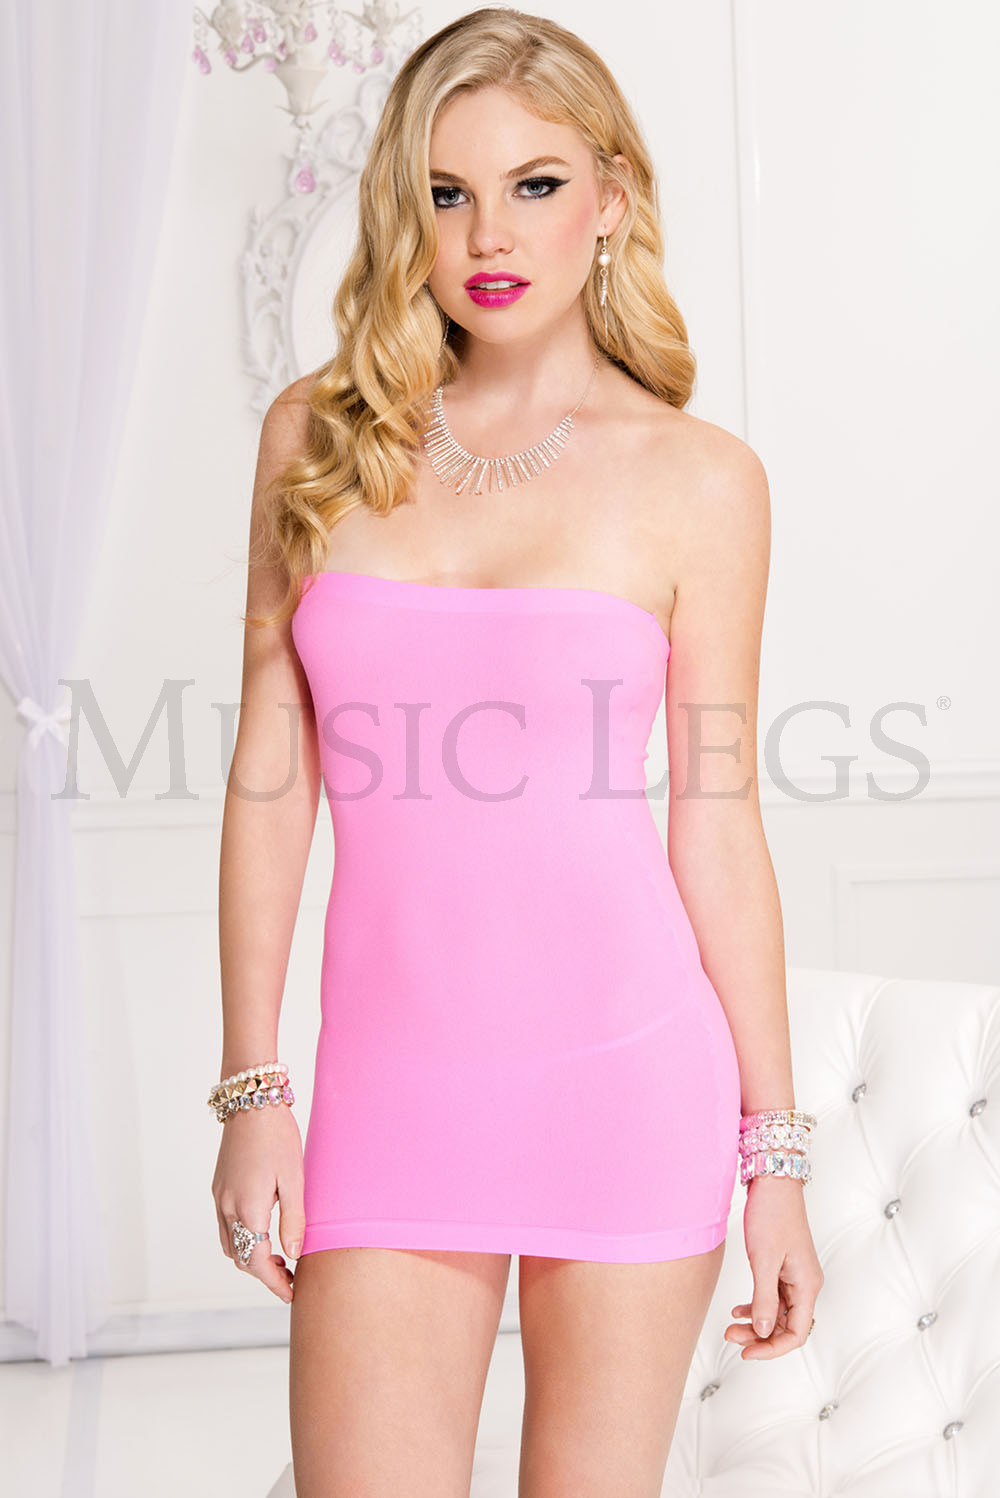 New Music Legs 60007 Wet Look And Lace Sleeveless Dress